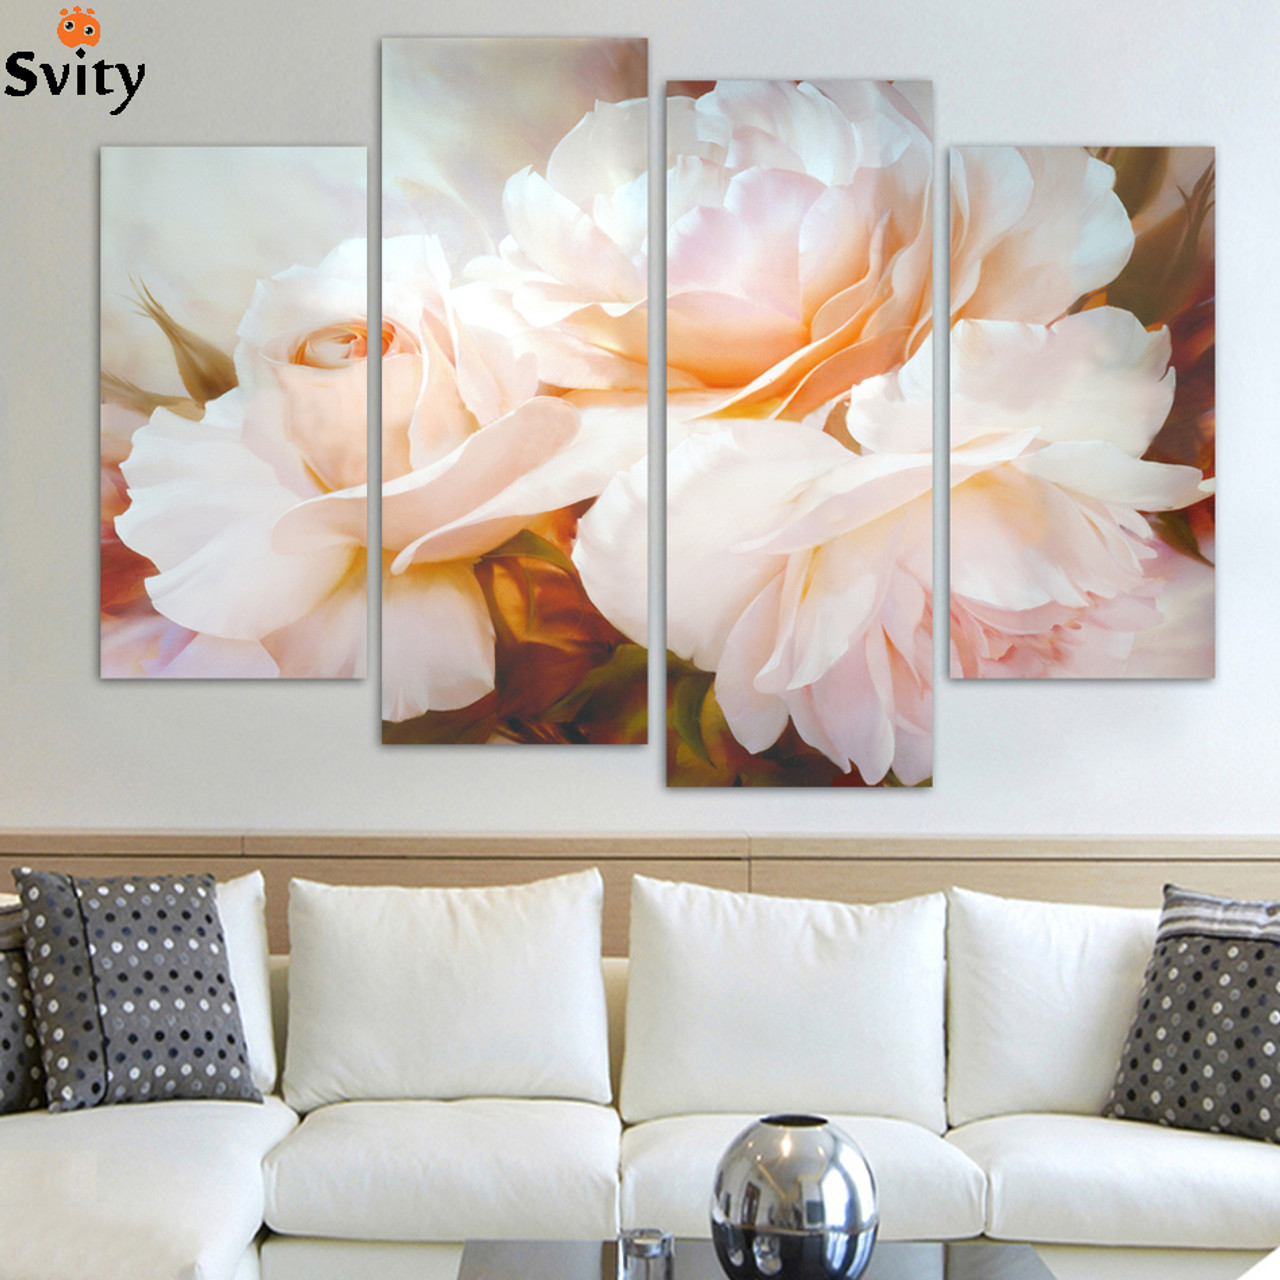 4 pcs set combined rose flower paintings modern wall painting canvas wall art picture unframed h096